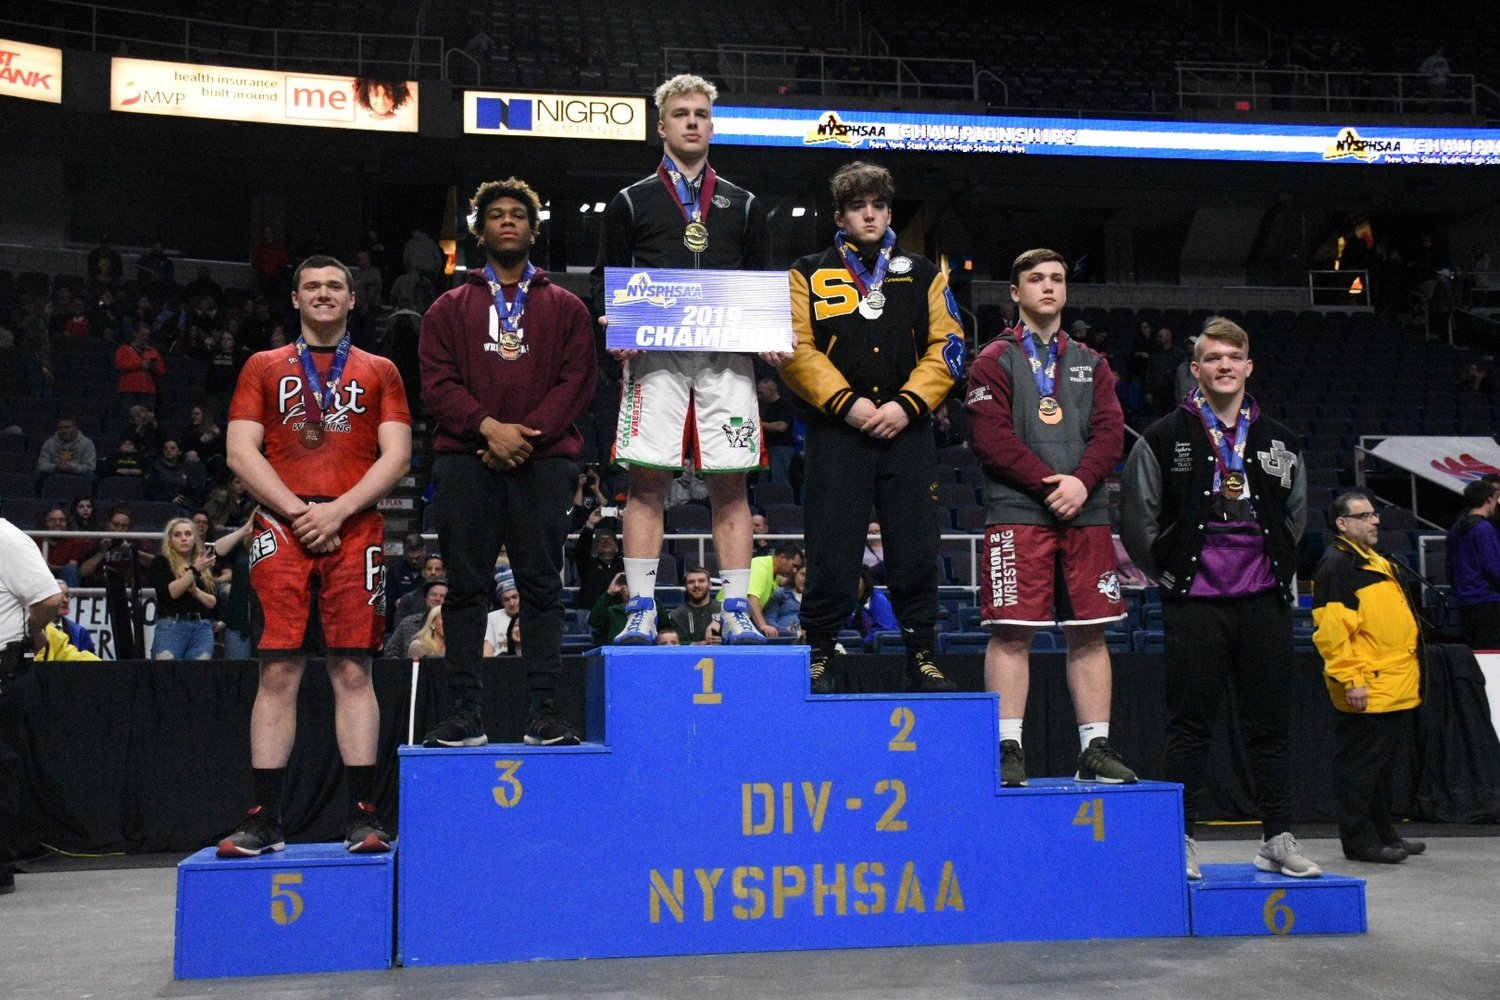 W.T. Clarke High School wrestler Karl Bouyer, second from left, earned third place at the New York State competition this winter.